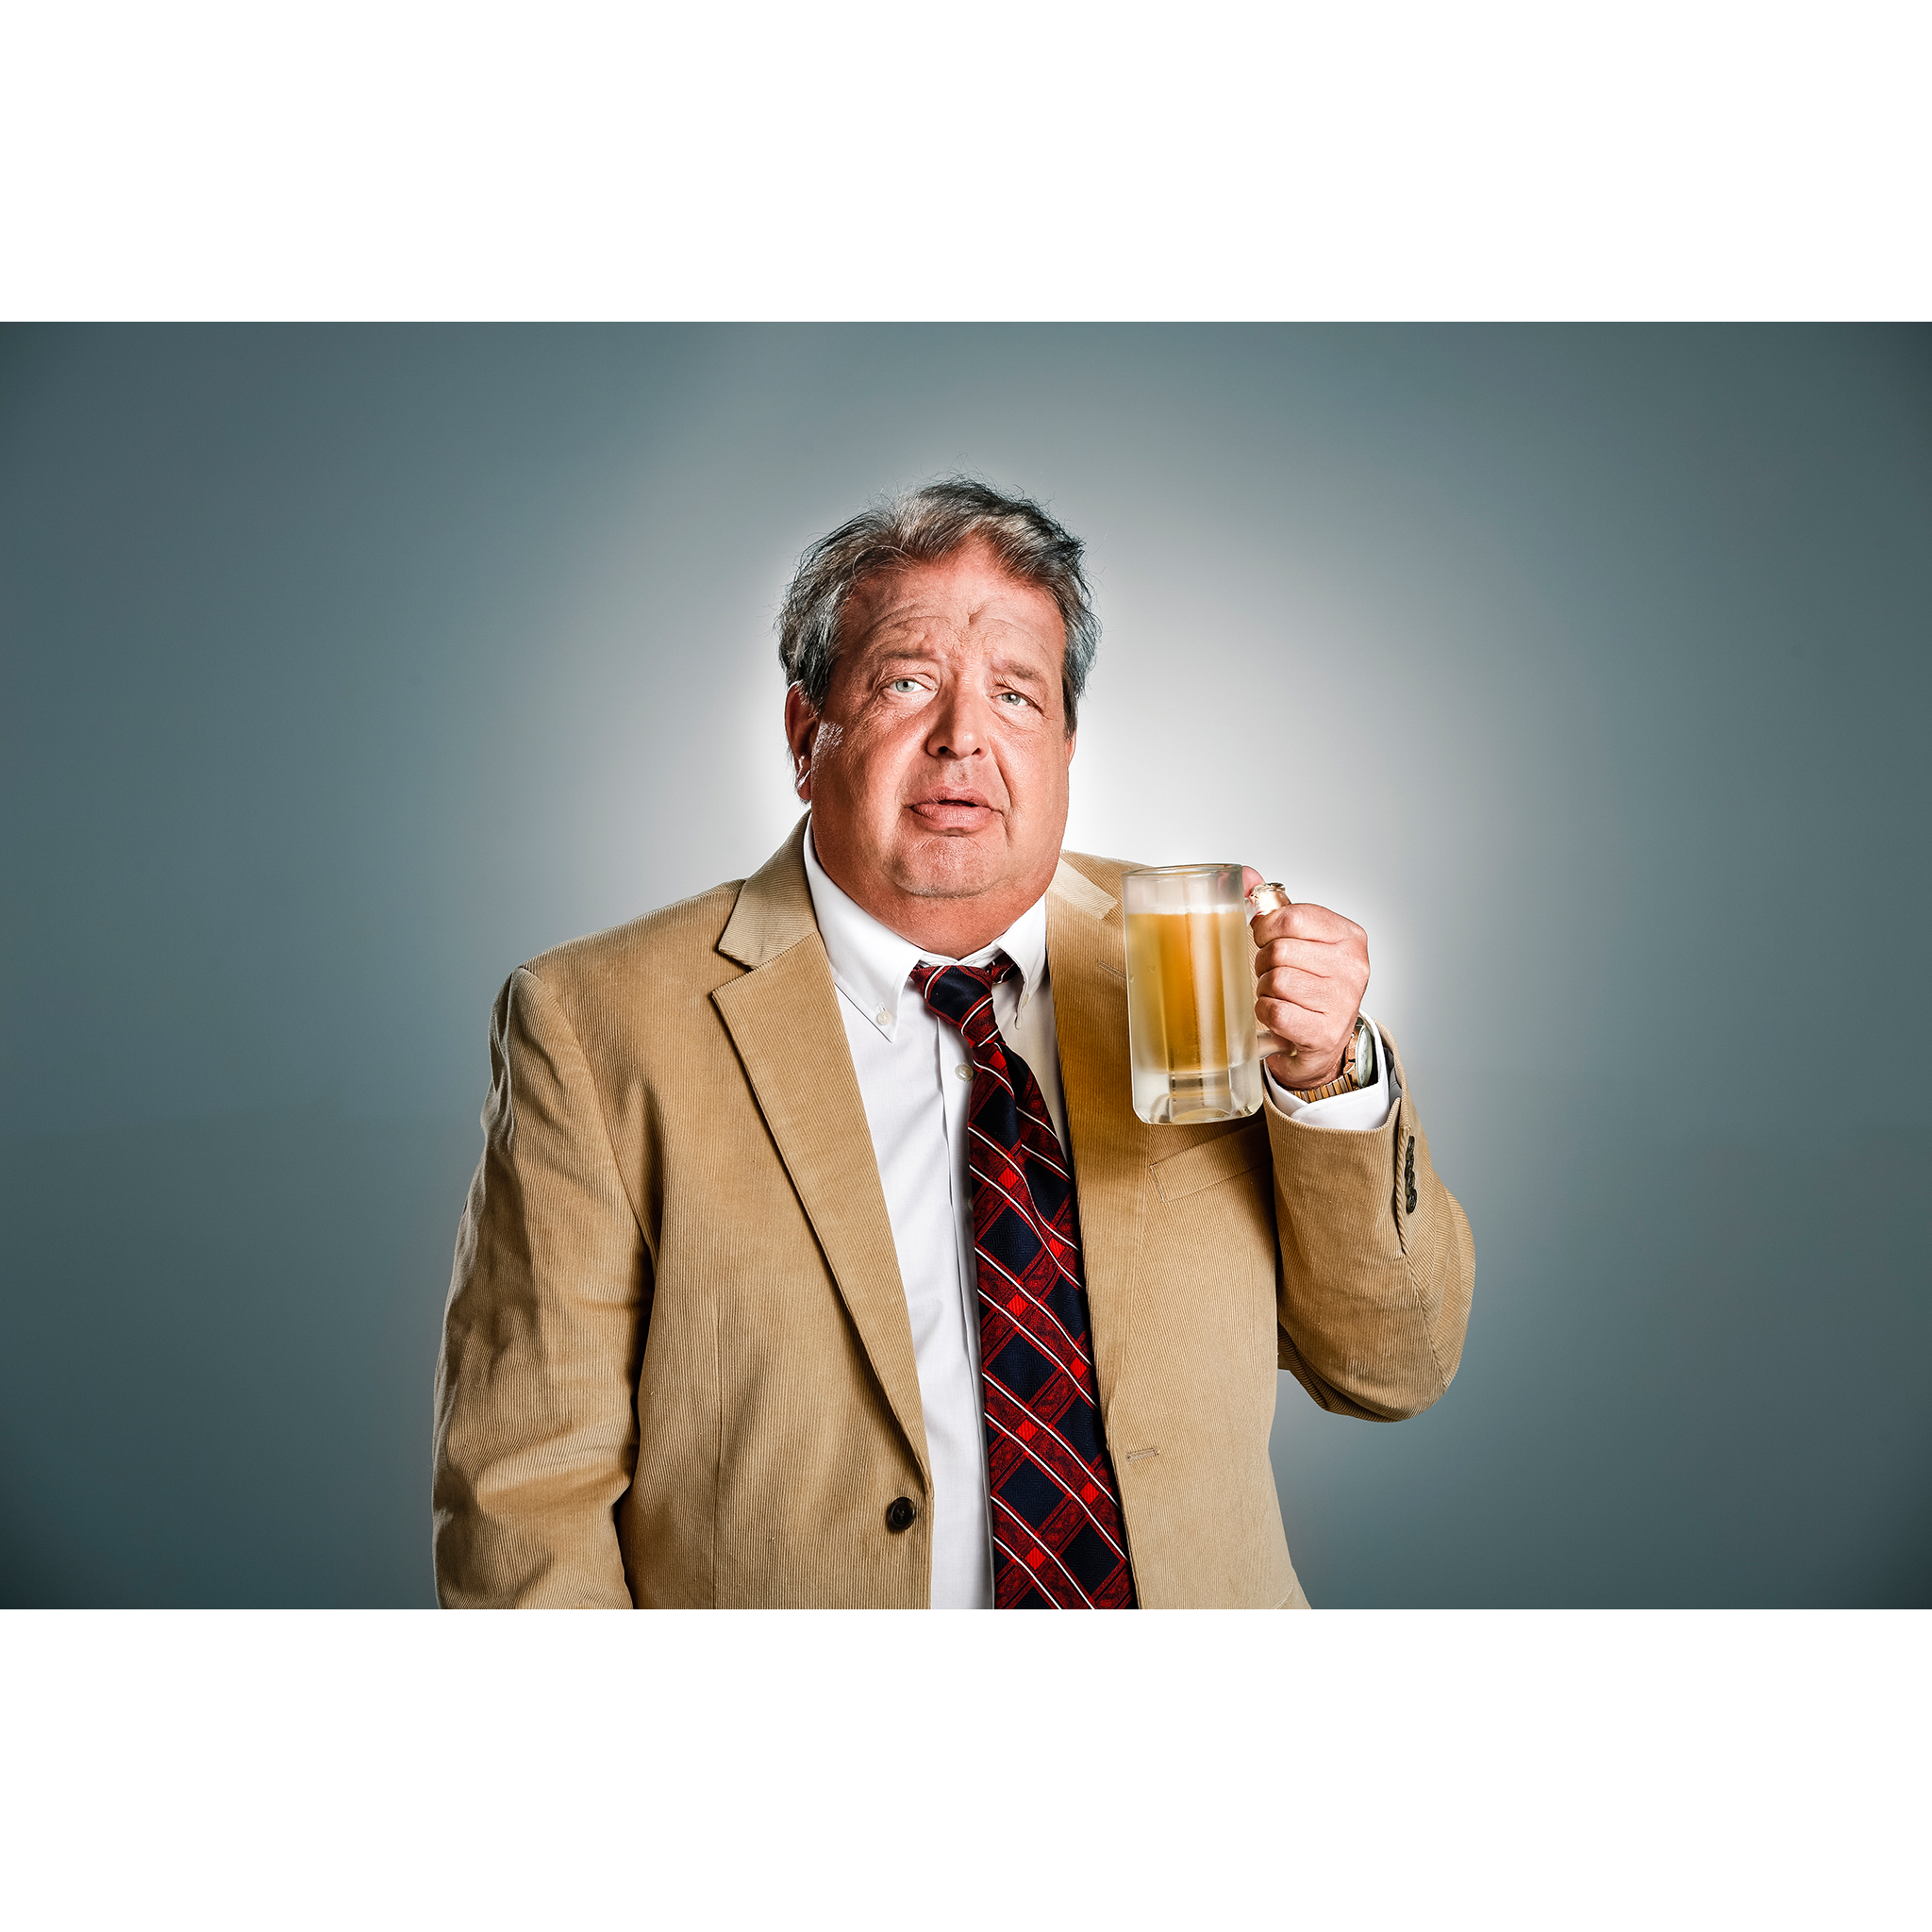 Portrait of man in sport coat drinking beer in mug by photographer Craig Anderson